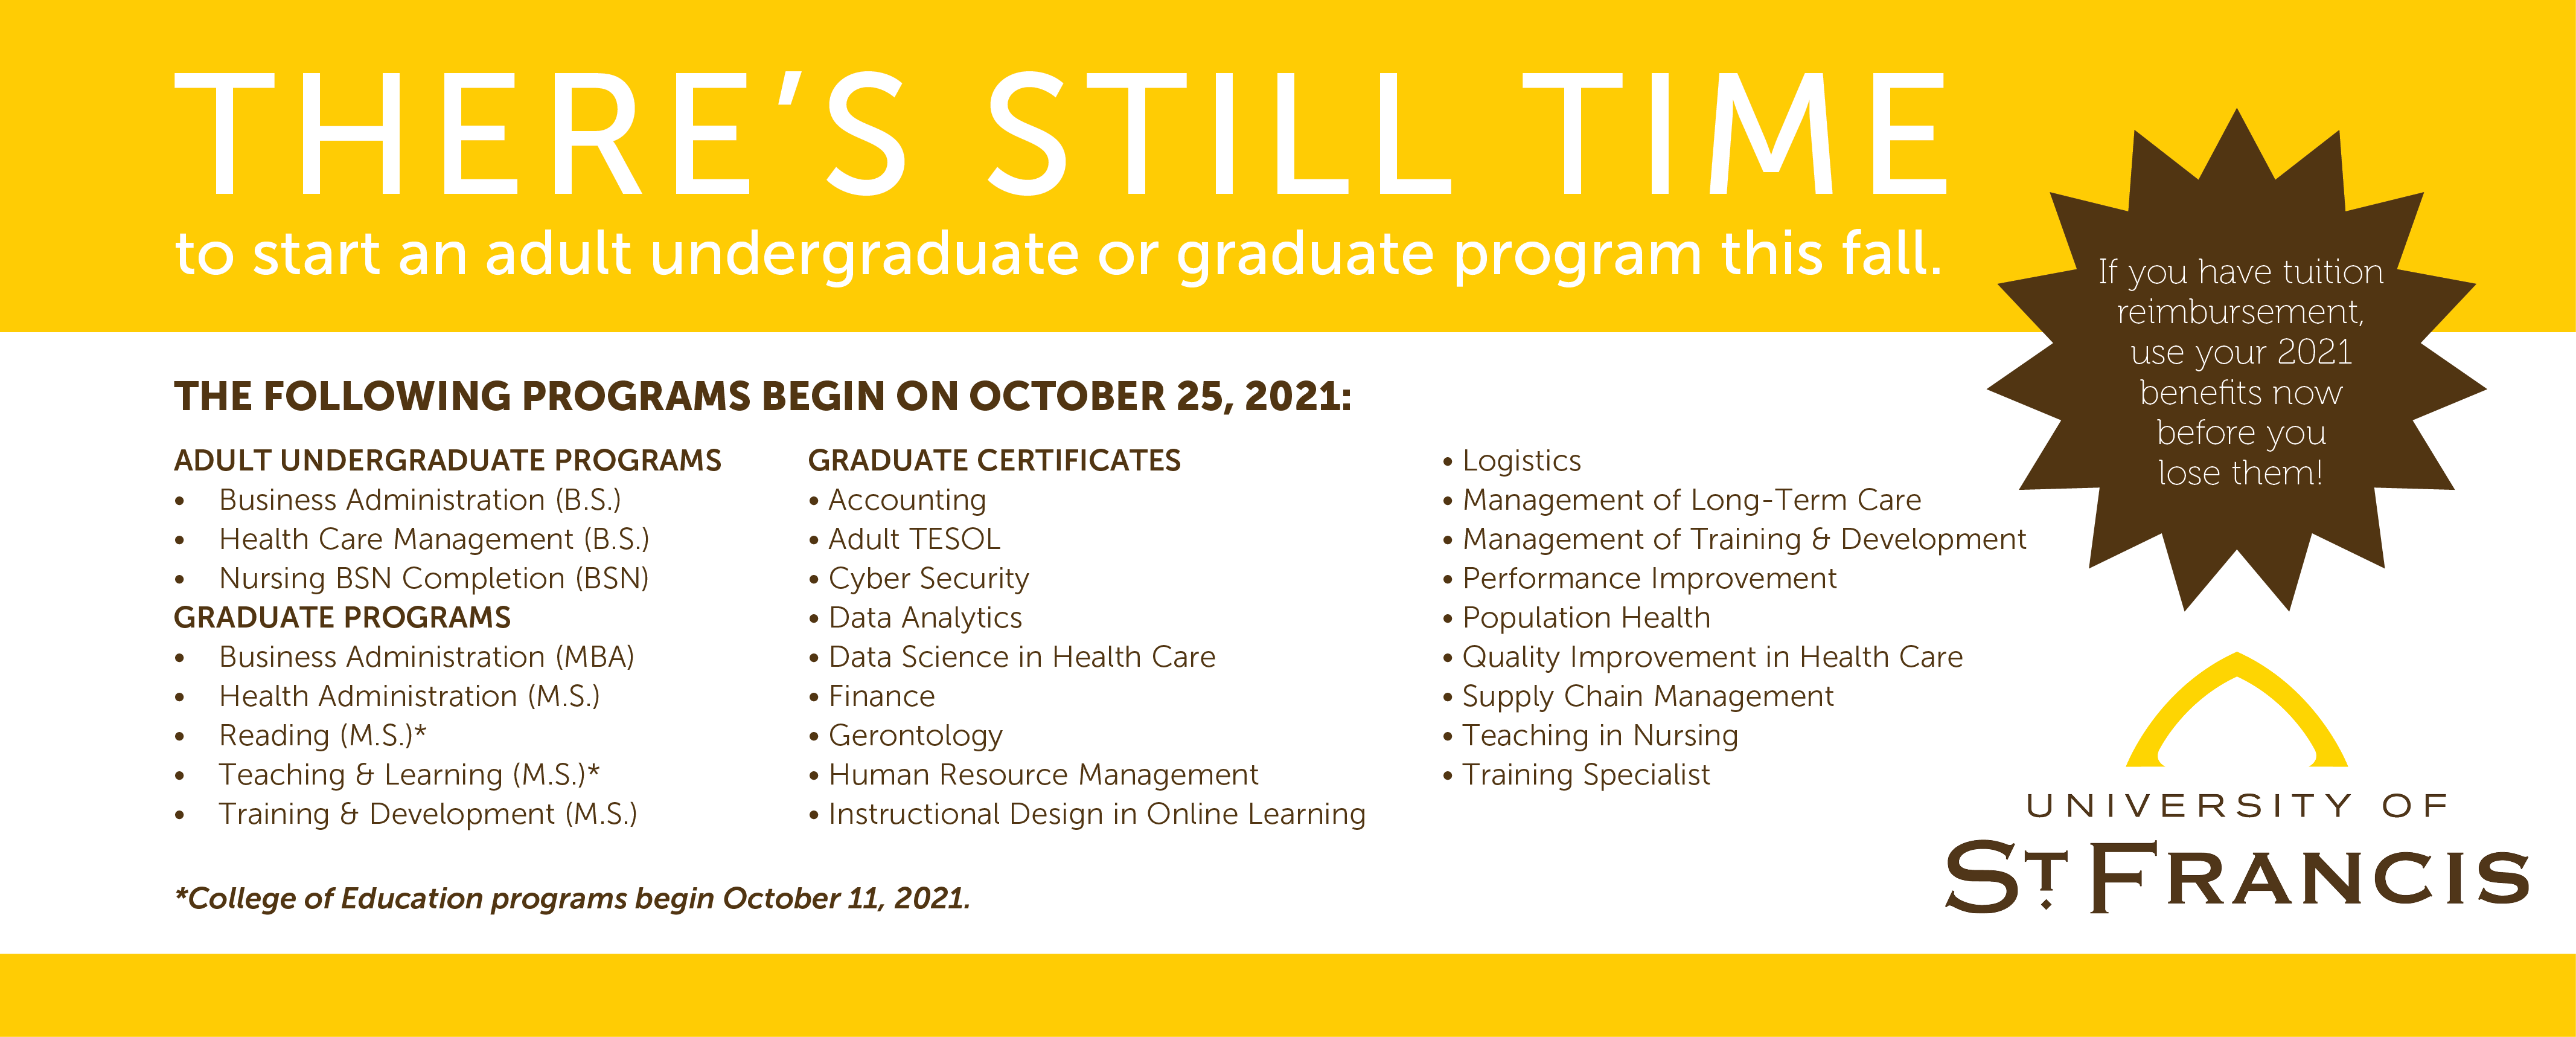 October 25 is next start date for adult undergrad and grad classes